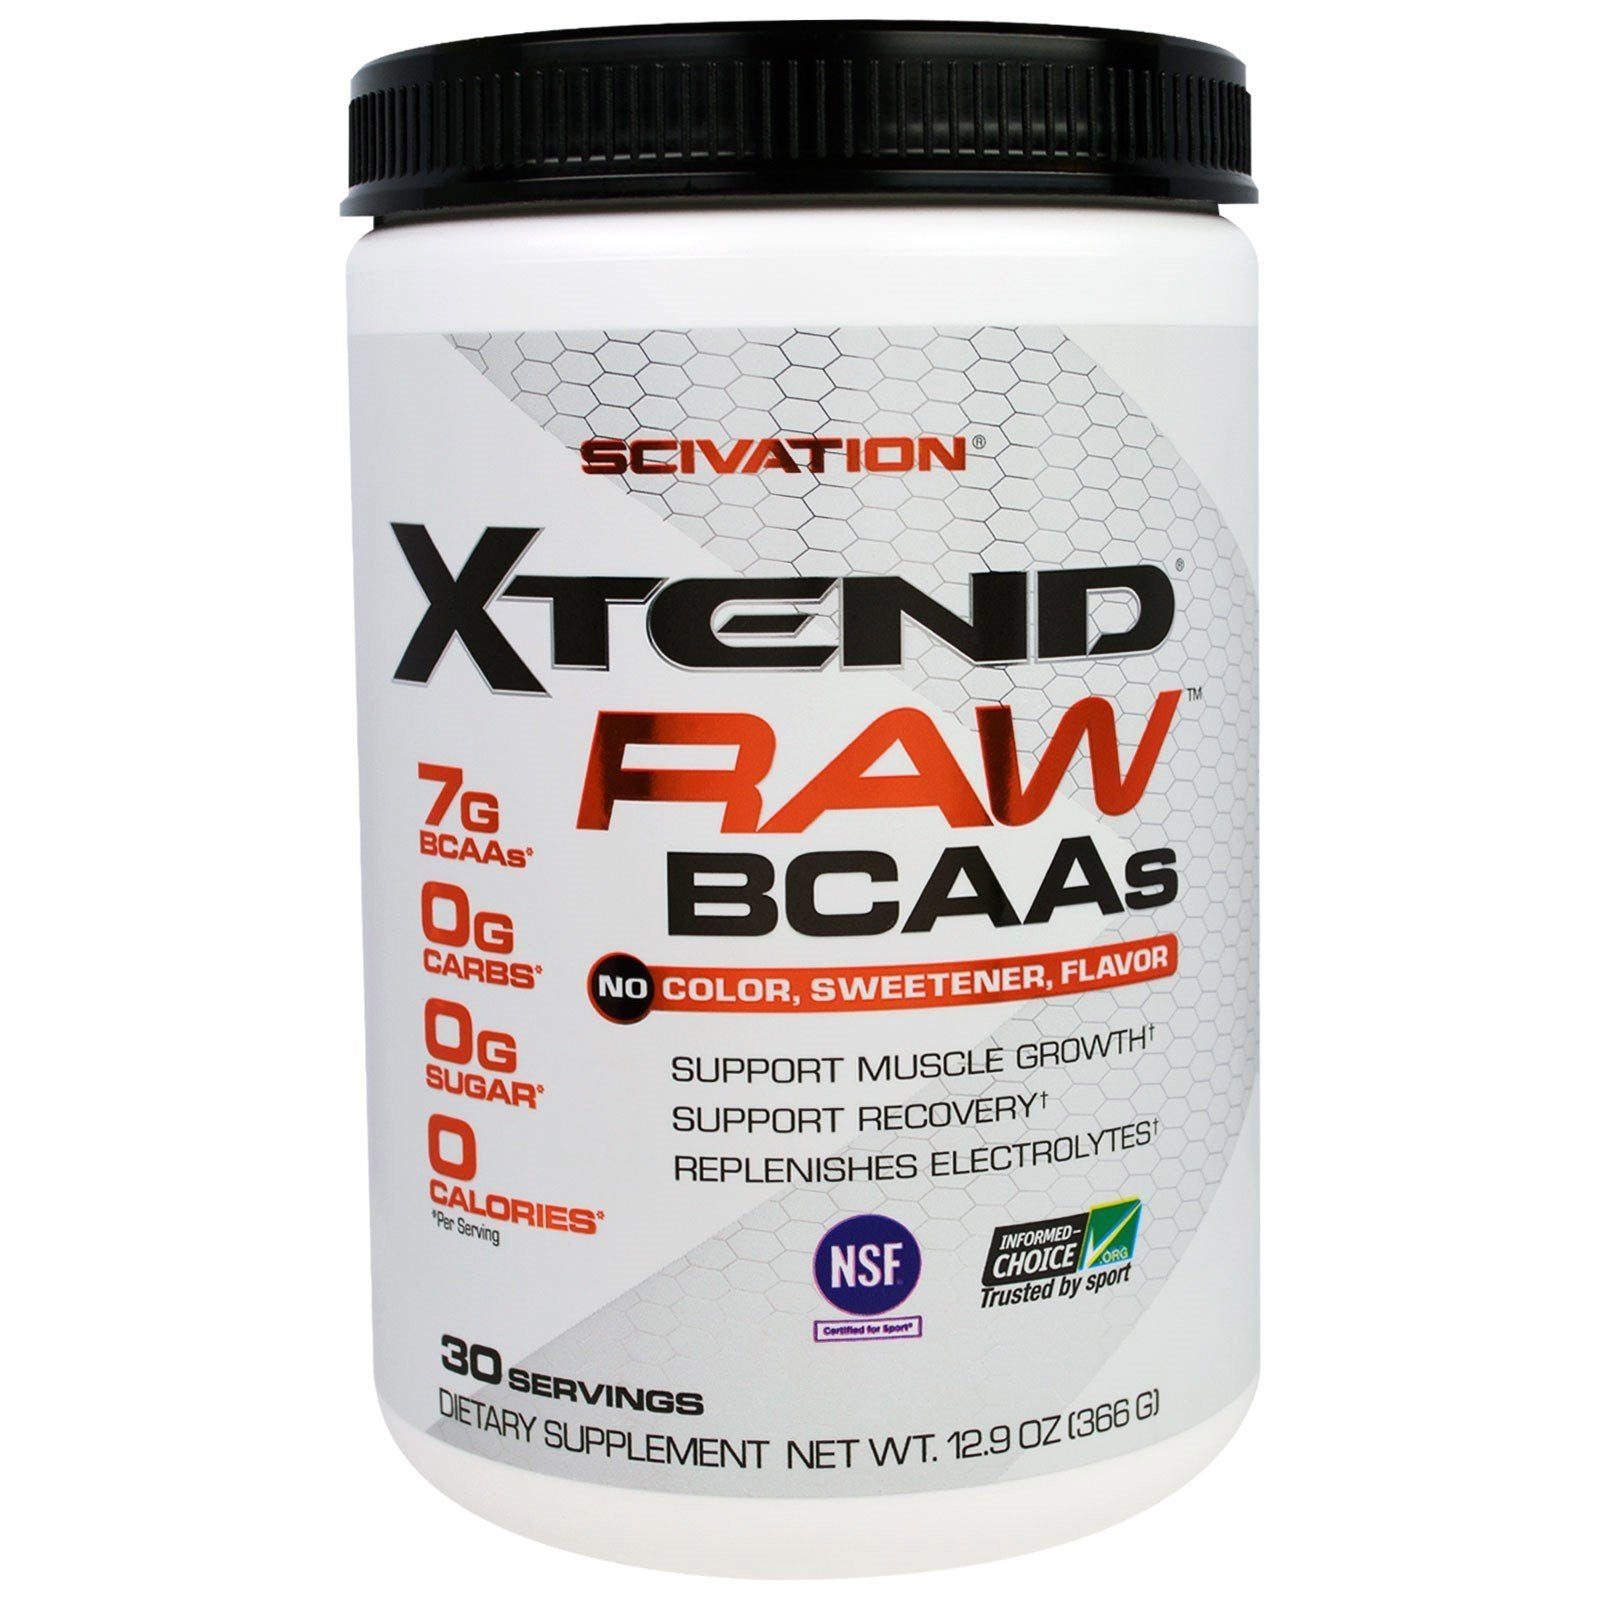 Scivation Xtend Raw Unflavored 30 Servings Amino Acids Scivation  (1197923336235)